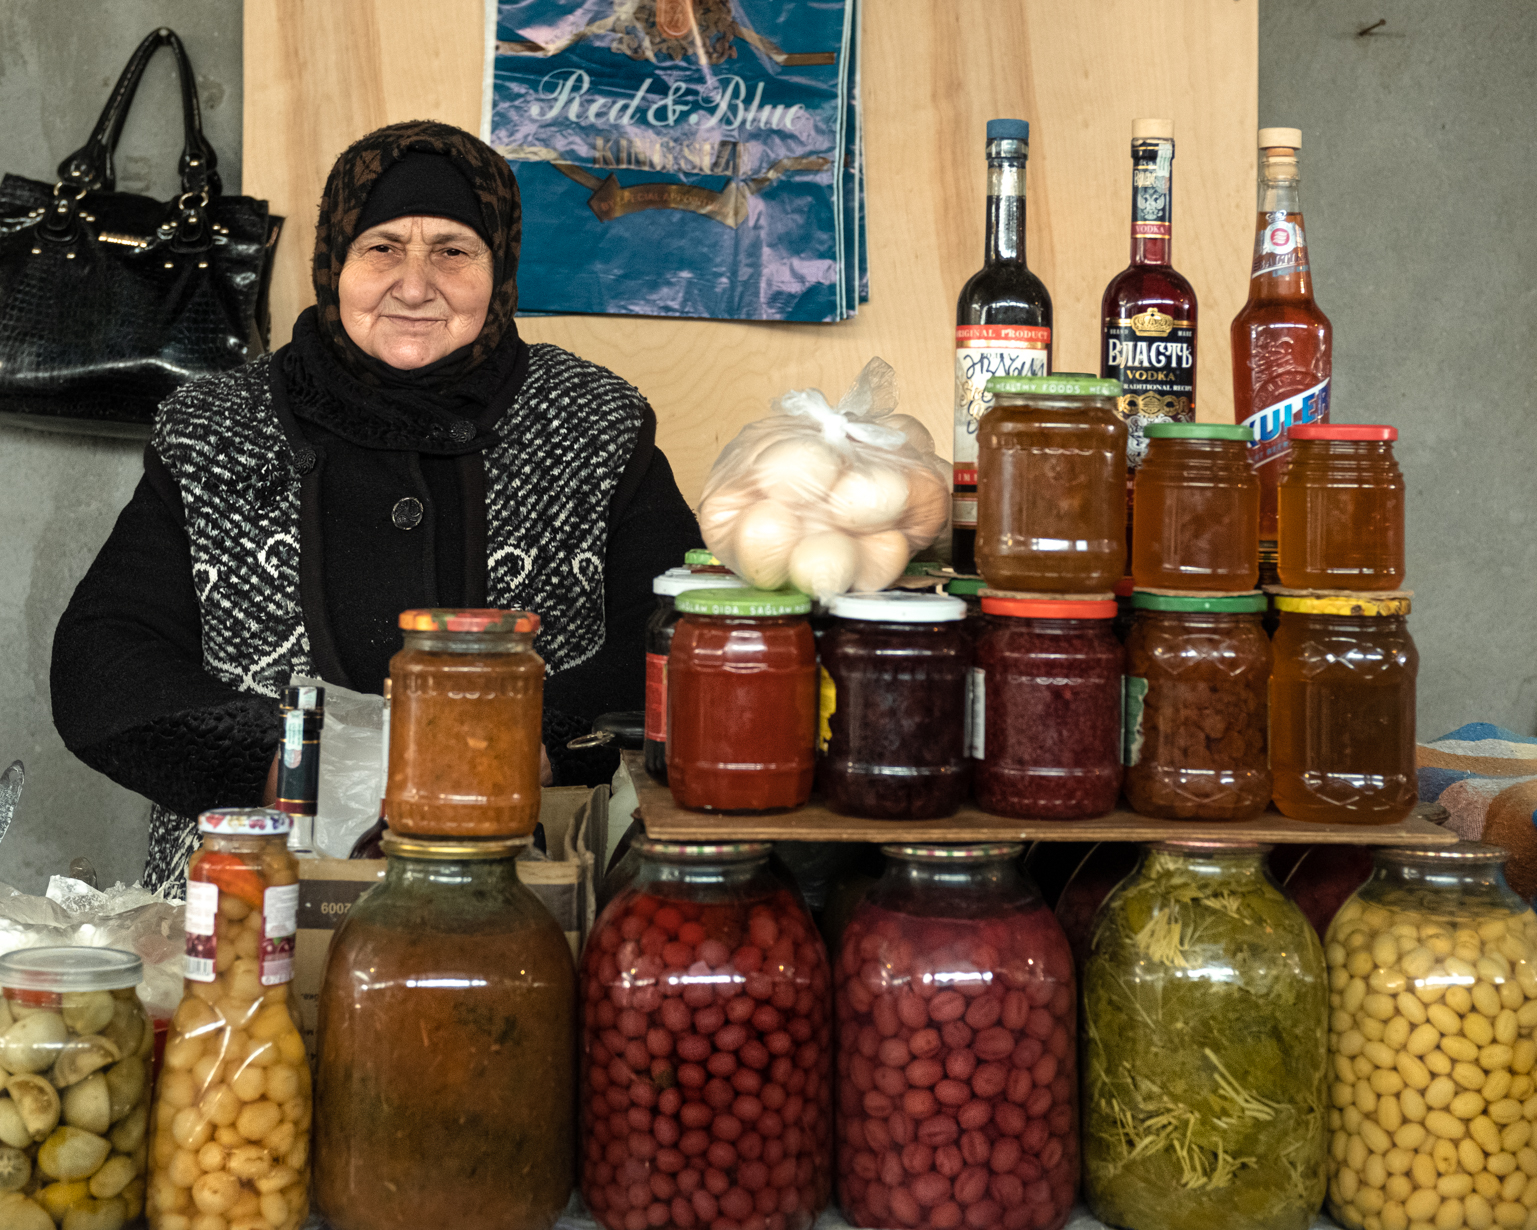 Fatima is 70 and she sells homemade jams, pickles, juices and sauces. She came to the bazaar to work ...